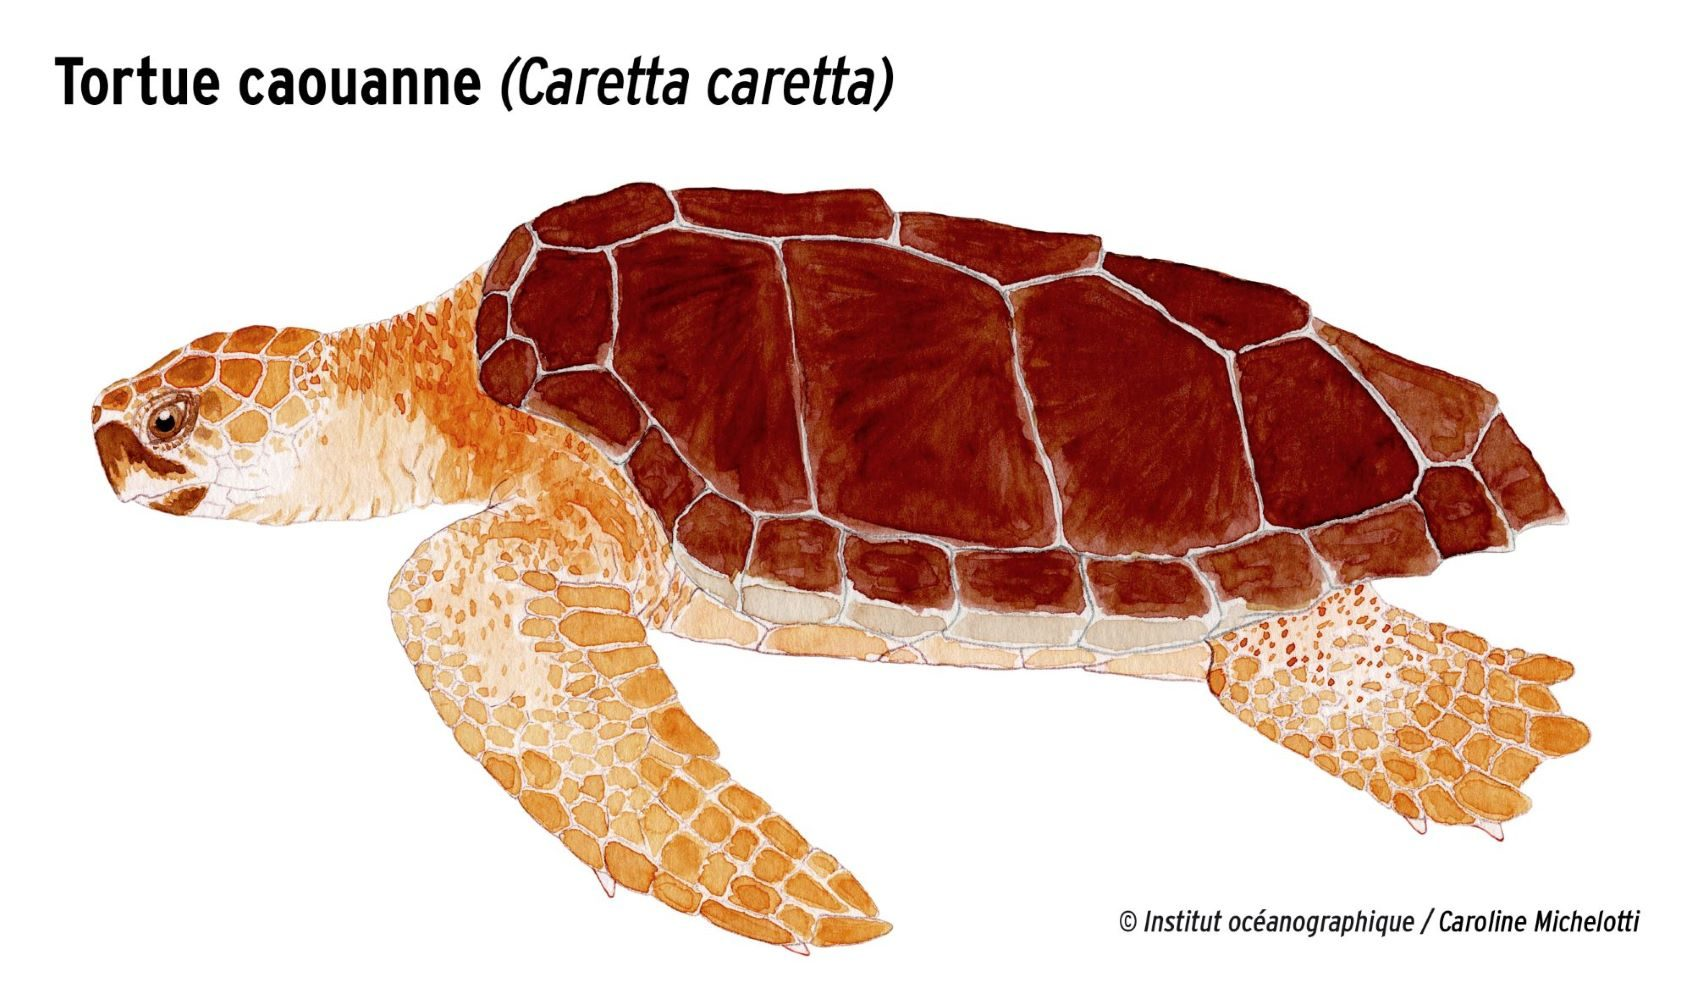 MOM - Tortue caouanne